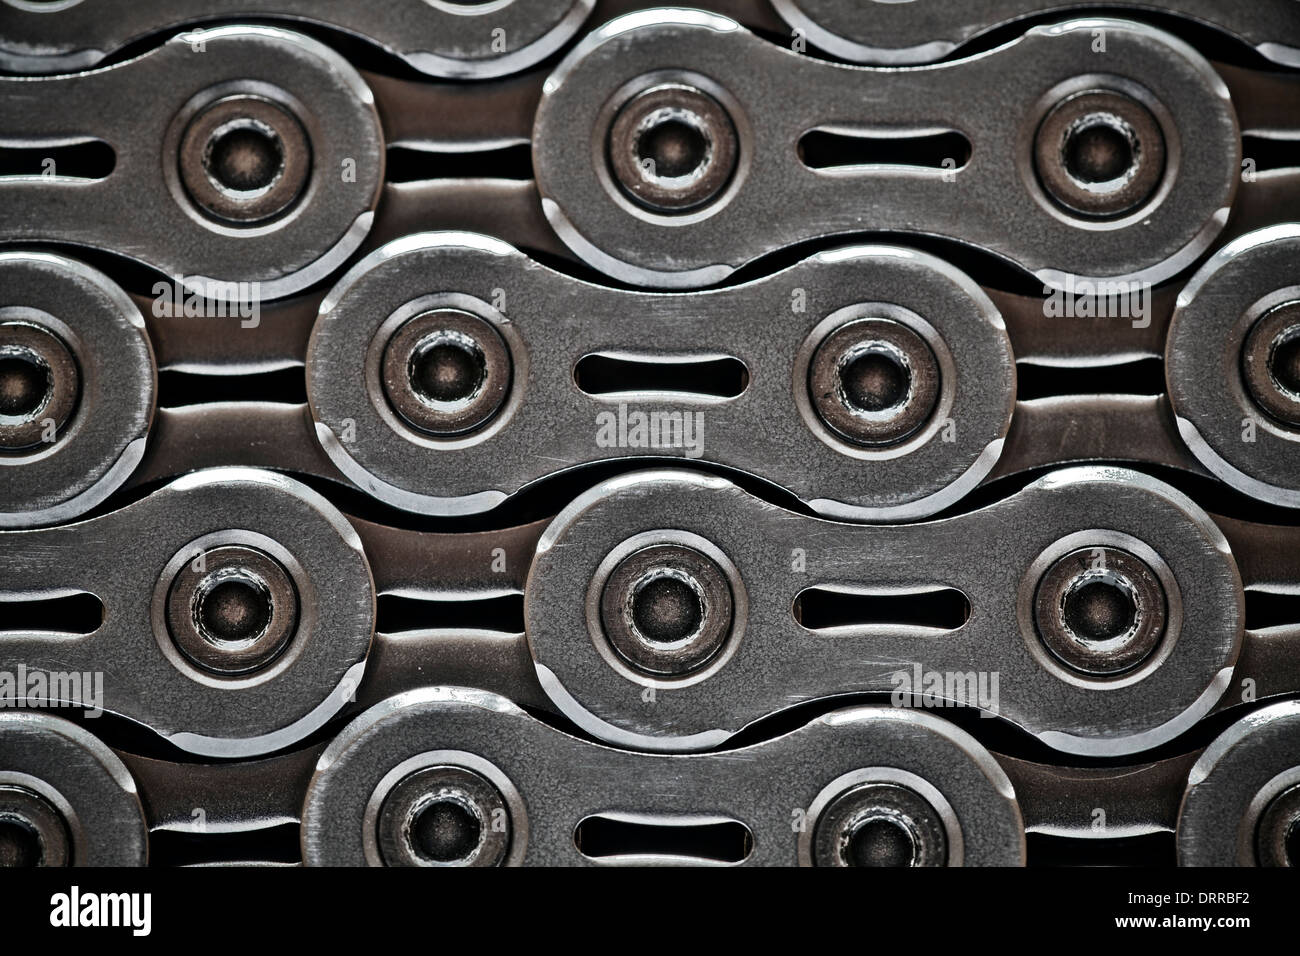 Another link in the chain. Working together. Cogs in the machine. Making wheels go round or a business work. - Stock Image